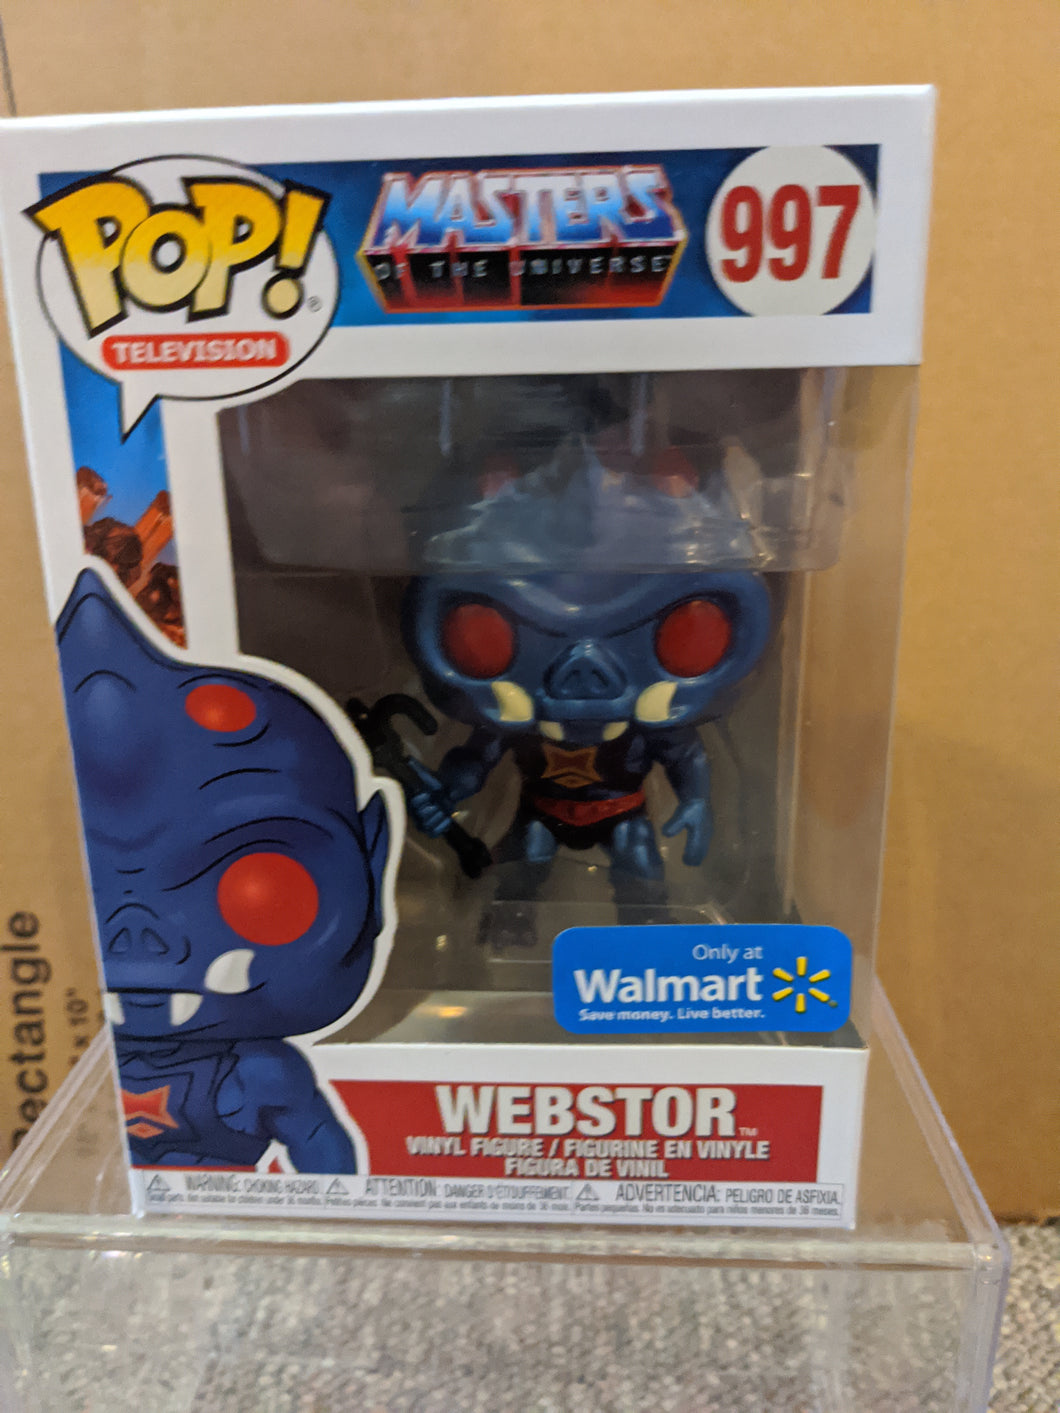 Webstor Walmart Exclusive